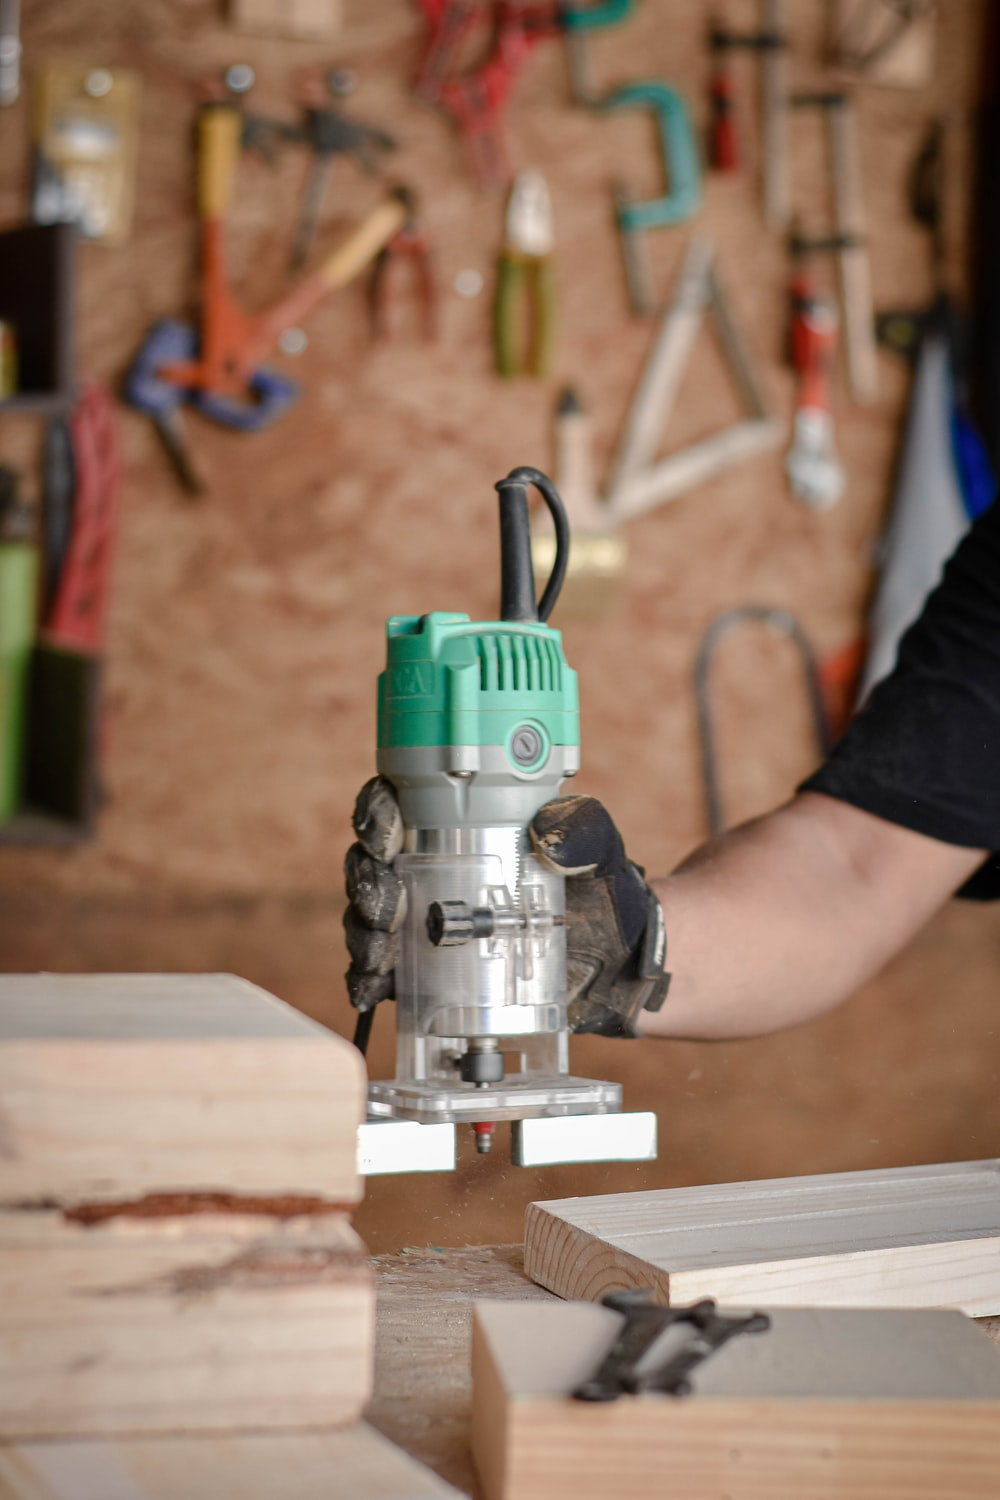 person holding green and gray power tool